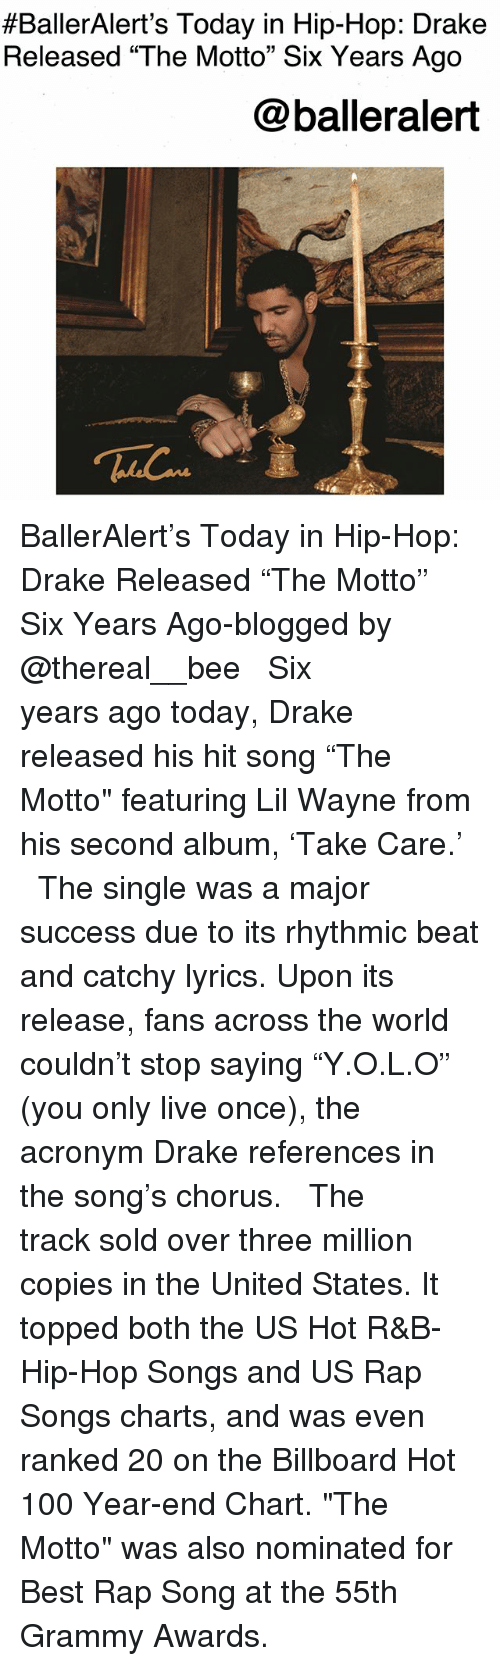 "Anaconda, Billboard, and Drake:  #BallerAlert's Today in Hip-Hop: Drake  Released ""The Motto"" Six Years Ago  @balleralert BallerAlert's Today in Hip-Hop: Drake Released ""The Motto"" Six Years Ago-blogged by @thereal__bee ⠀⠀⠀⠀⠀⠀⠀⠀⠀ ⠀⠀ Six years ago today, Drake released his hit song ""The Motto"" featuring Lil Wayne from his second album, 'Take Care.' ⠀⠀⠀⠀⠀⠀⠀⠀⠀ ⠀⠀ The single was a major success due to its rhythmic beat and catchy lyrics. Upon its release, fans across the world couldn't stop saying ""Y.O.L.O"" (you only live once), the acronym Drake references in the song's chorus. ⠀⠀⠀⠀⠀⠀⠀⠀⠀ ⠀⠀ The track sold over three million copies in the United States. It topped both the US Hot R&B-Hip-Hop Songs and US Rap Songs charts, and was even ranked 20 on the Billboard Hot 100 Year-end Chart. ""The Motto"" was also nominated for Best Rap Song at the 55th Grammy Awards."